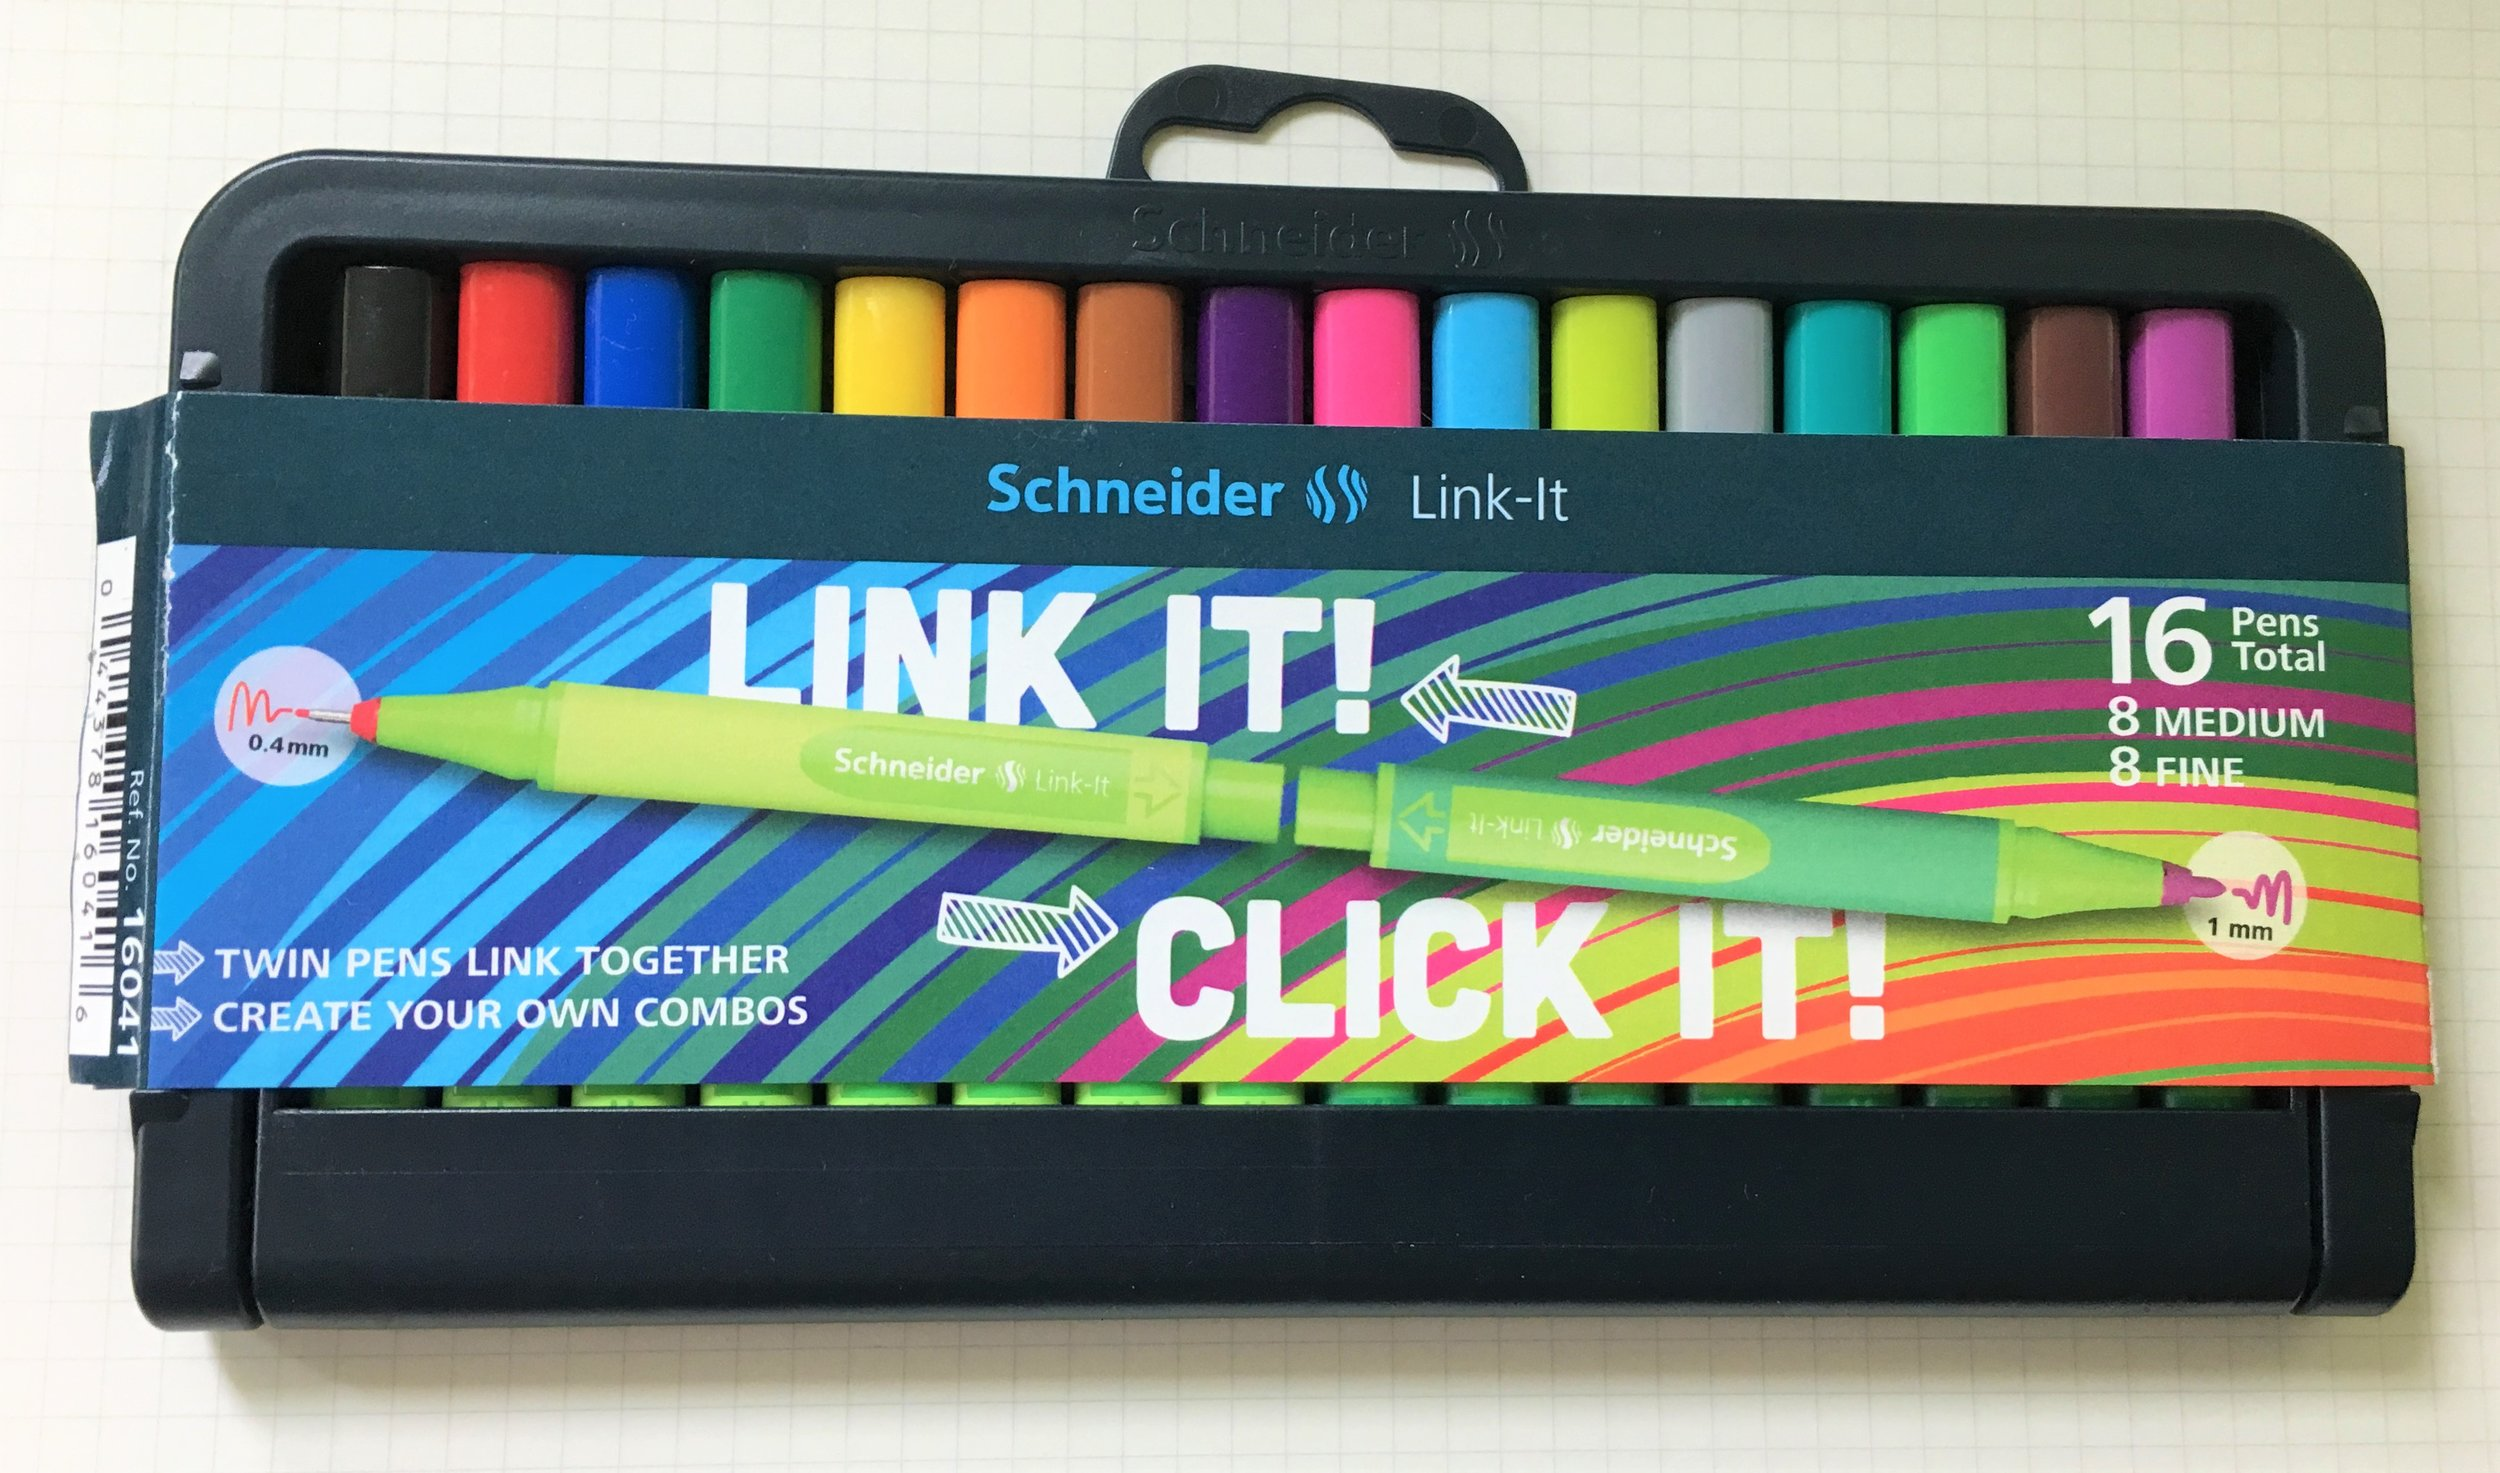 Schneider Link-It Markers